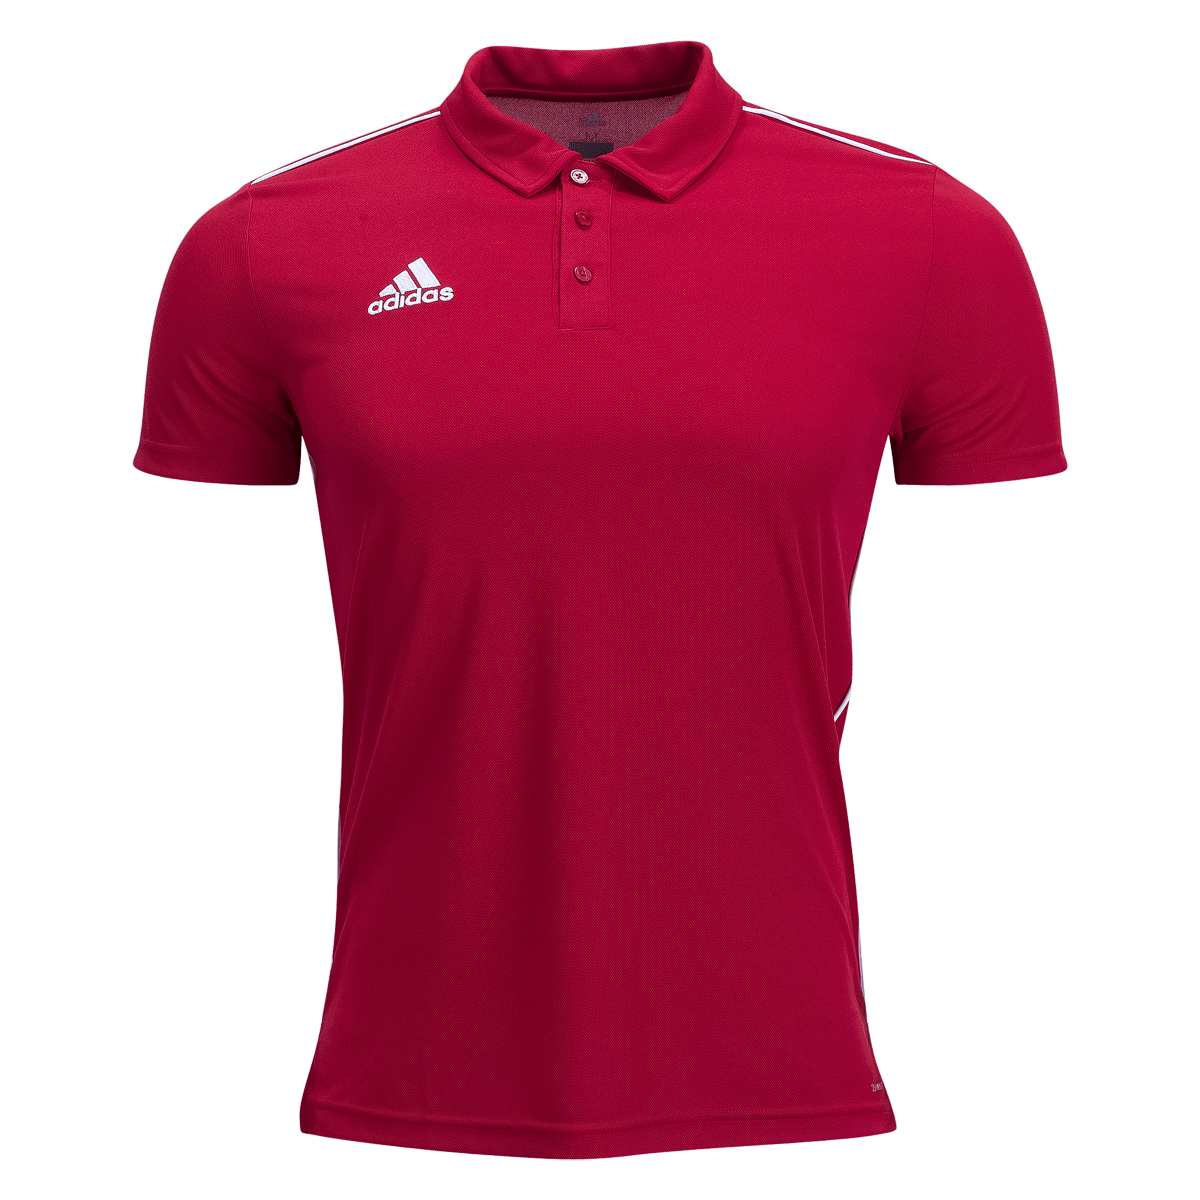 adidas Red Core Rugby Polo